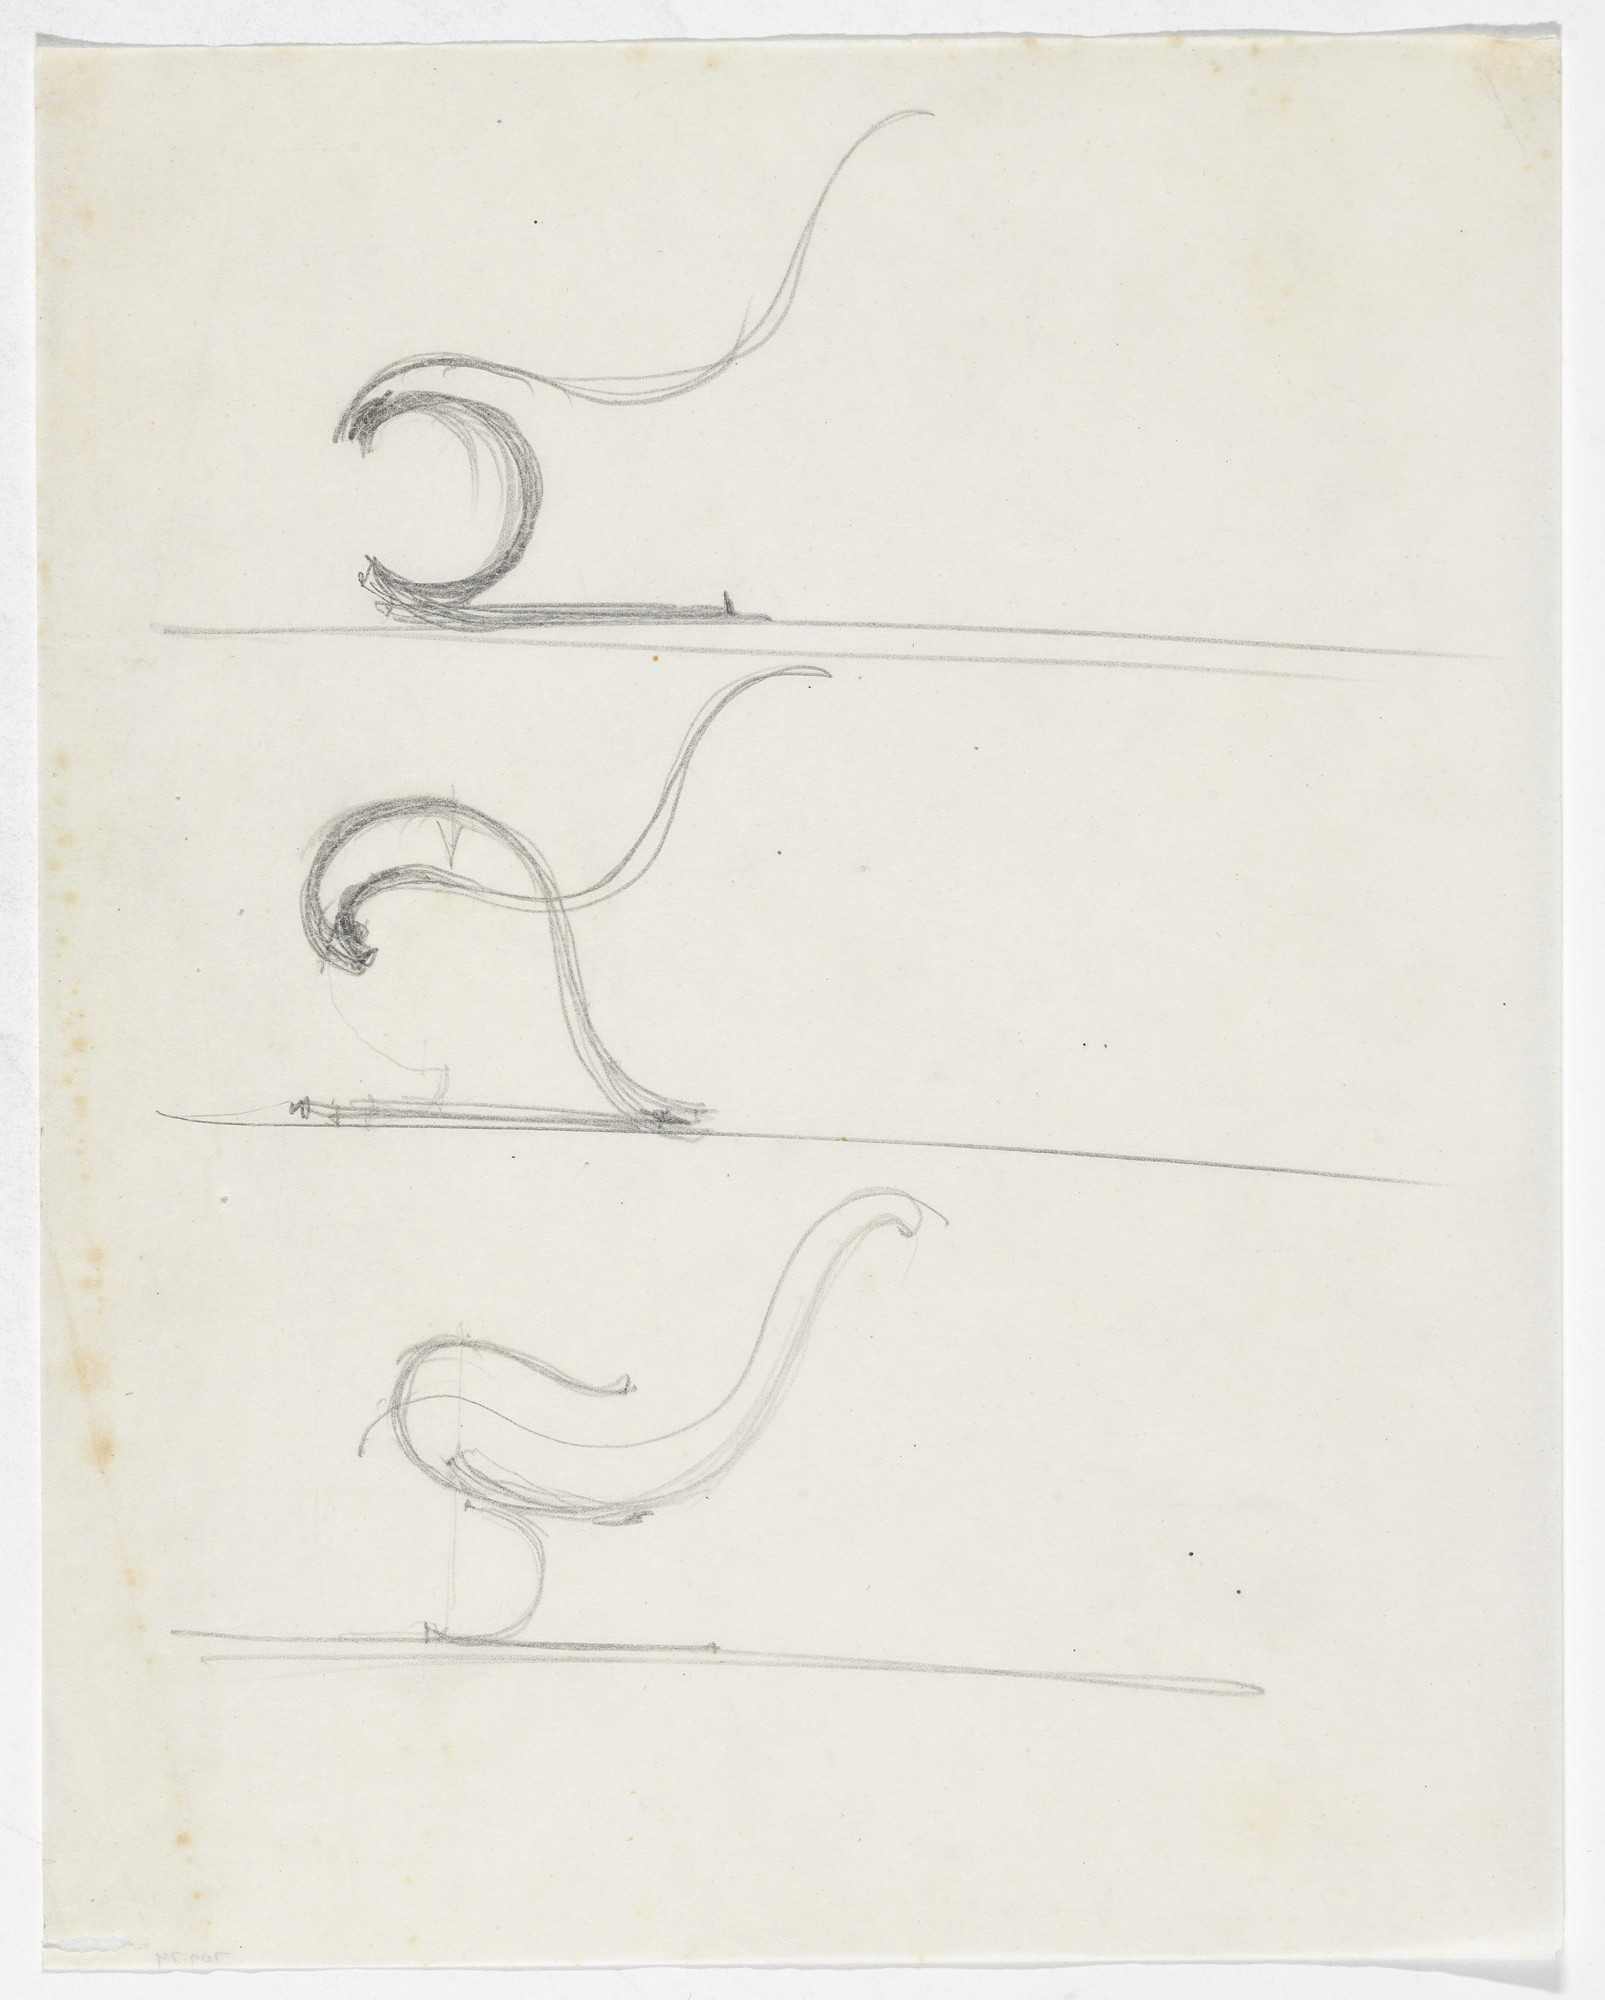 Ludwig Mies van der Rohe. Chair with Arms (Elevation sketch). 1933-1934